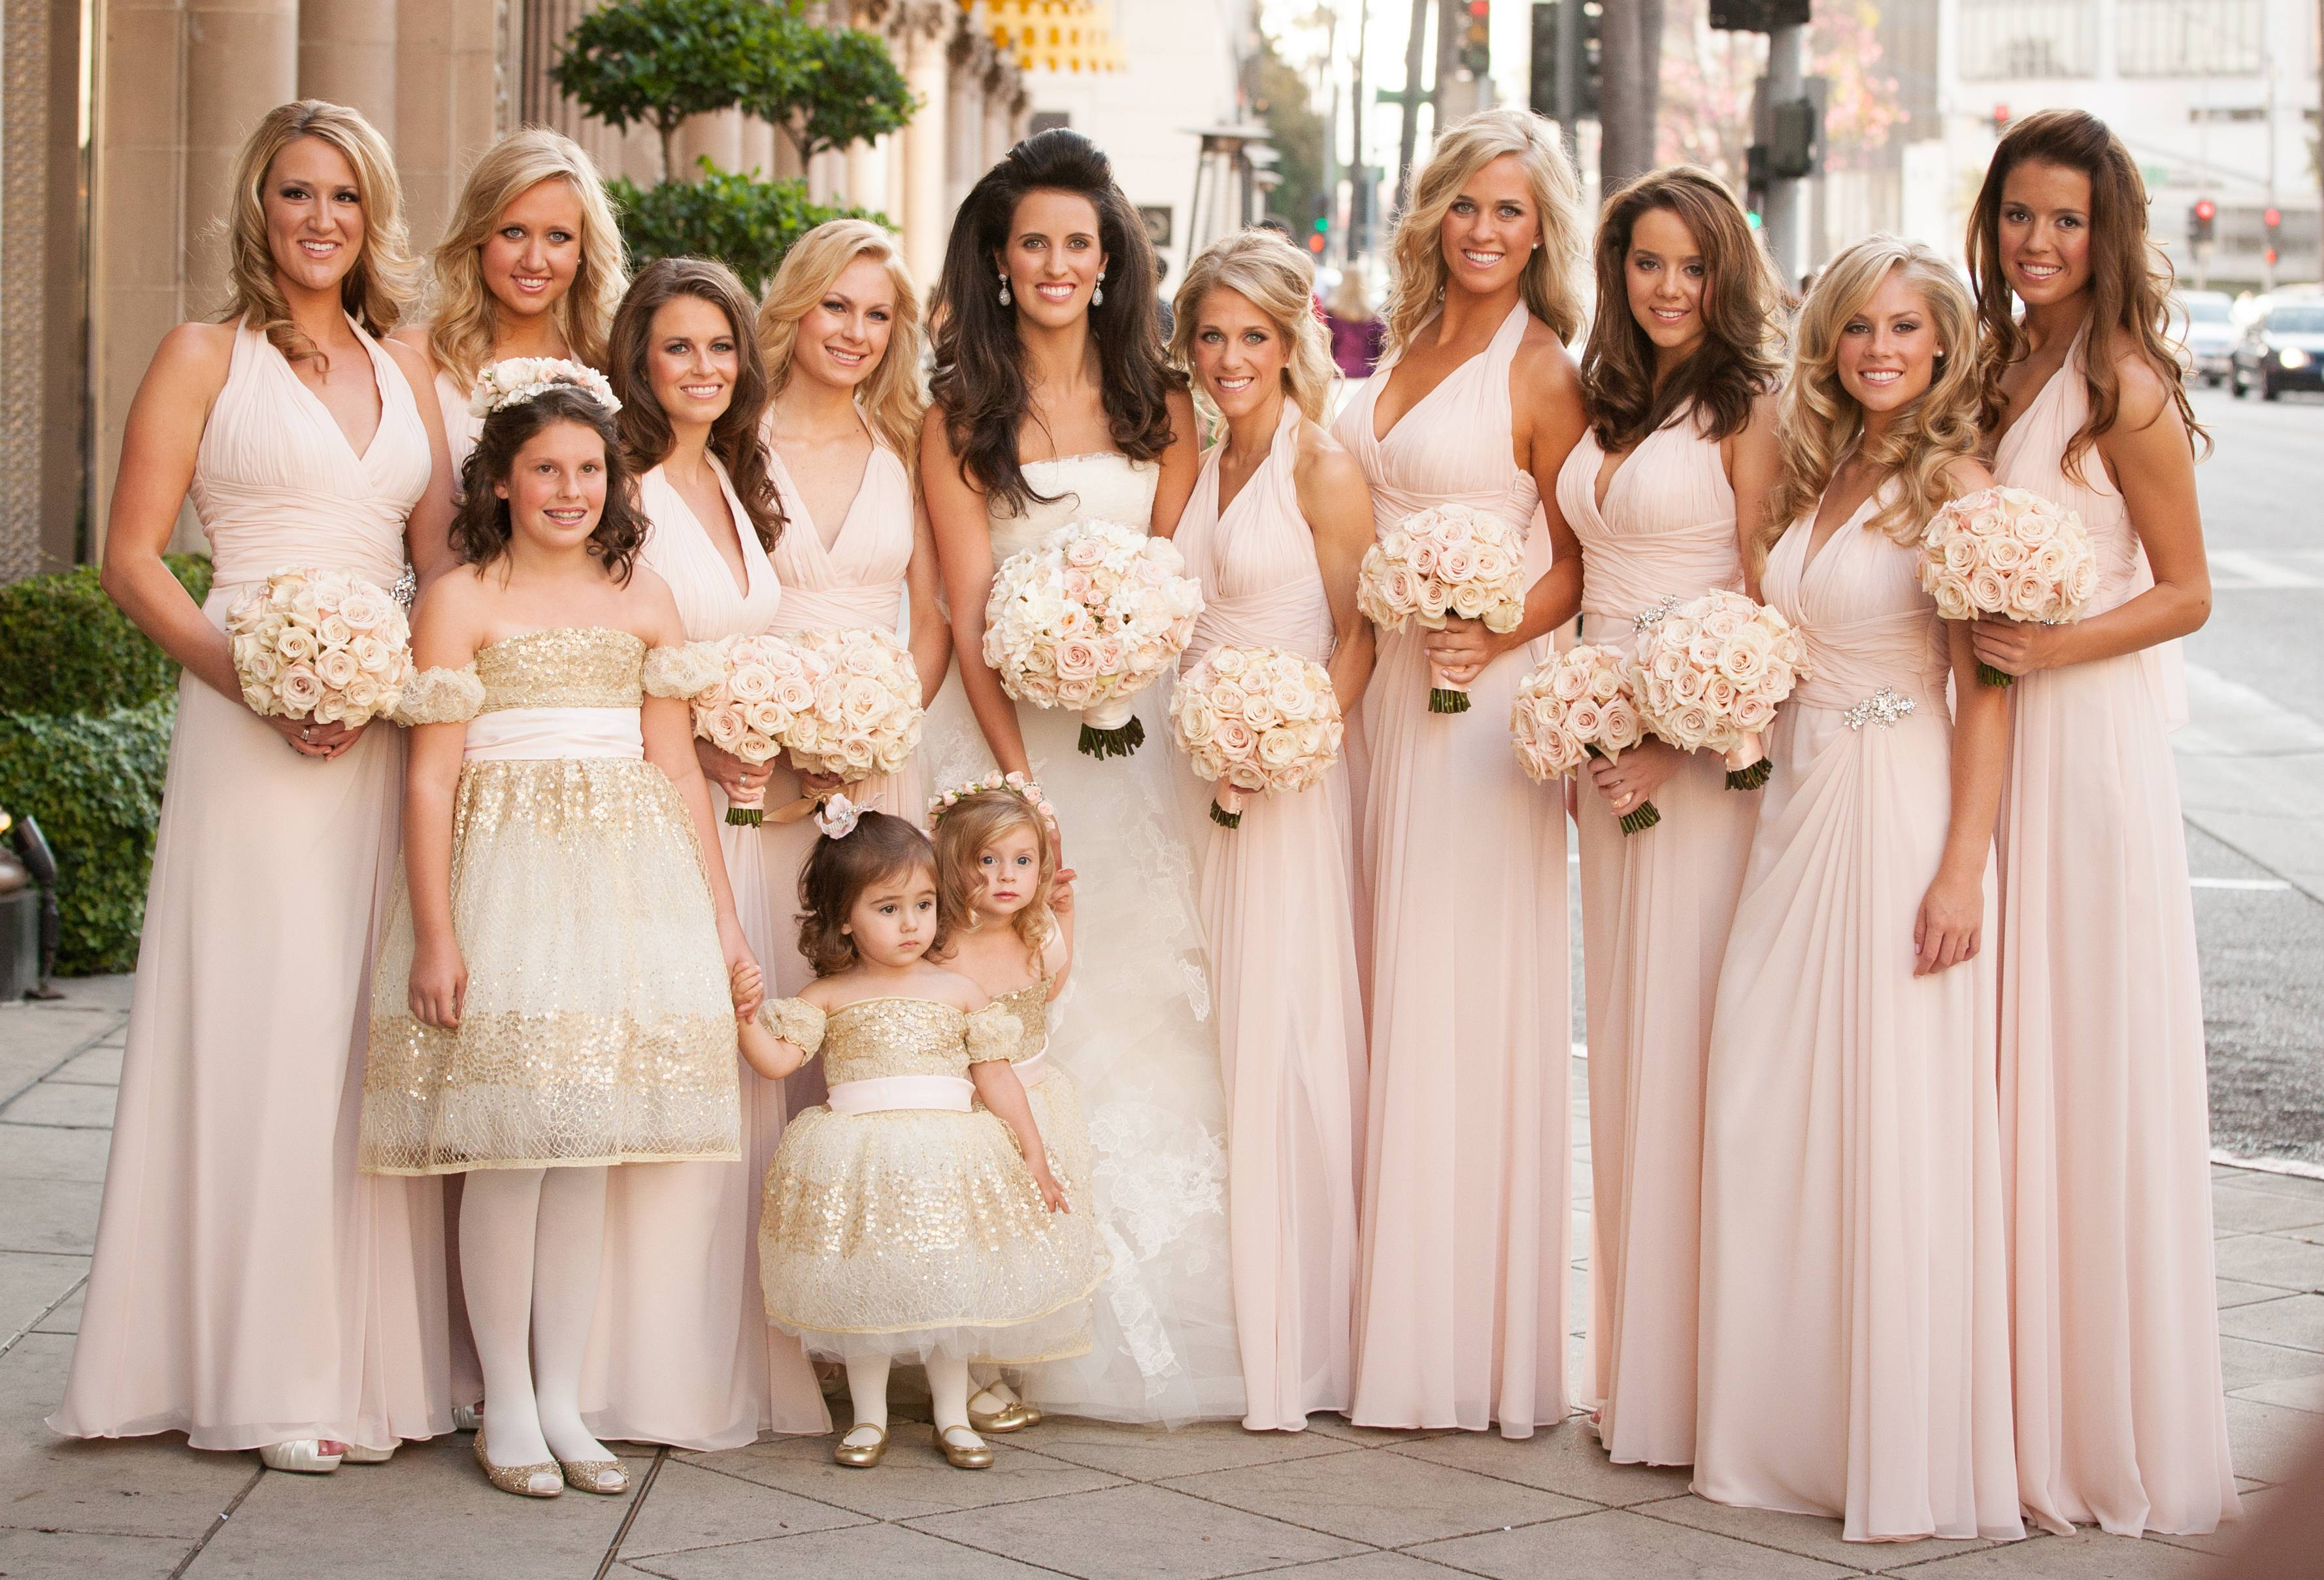 Bridesmaid Dresses Blush Bridesmaid Gowns From Real